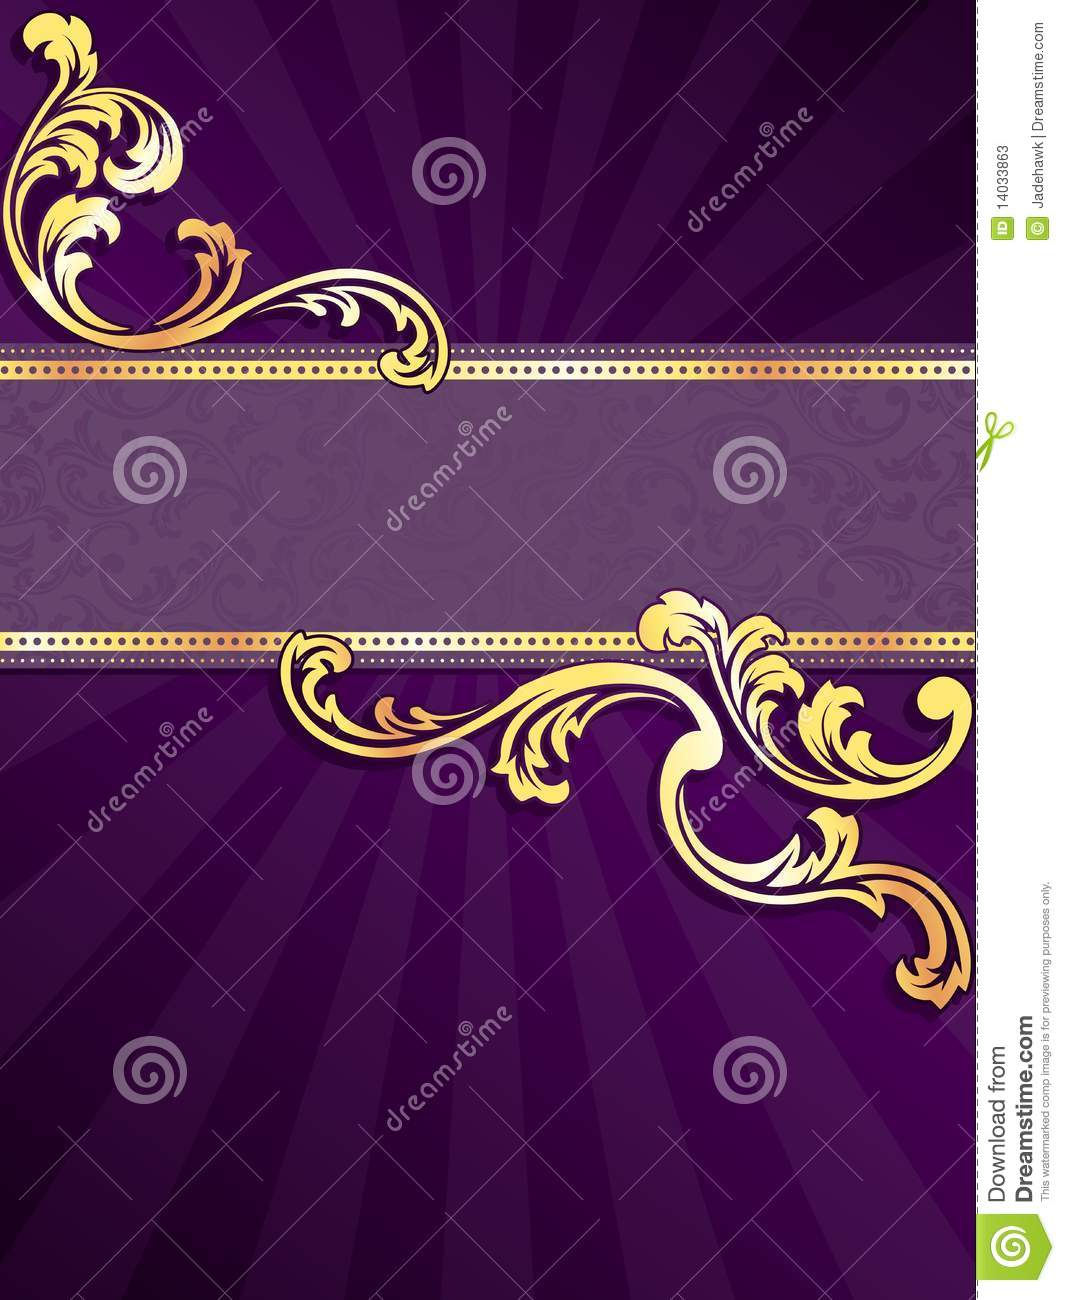 Purple Vertical Banner With Gold Filigree Stock Photos - Image ...